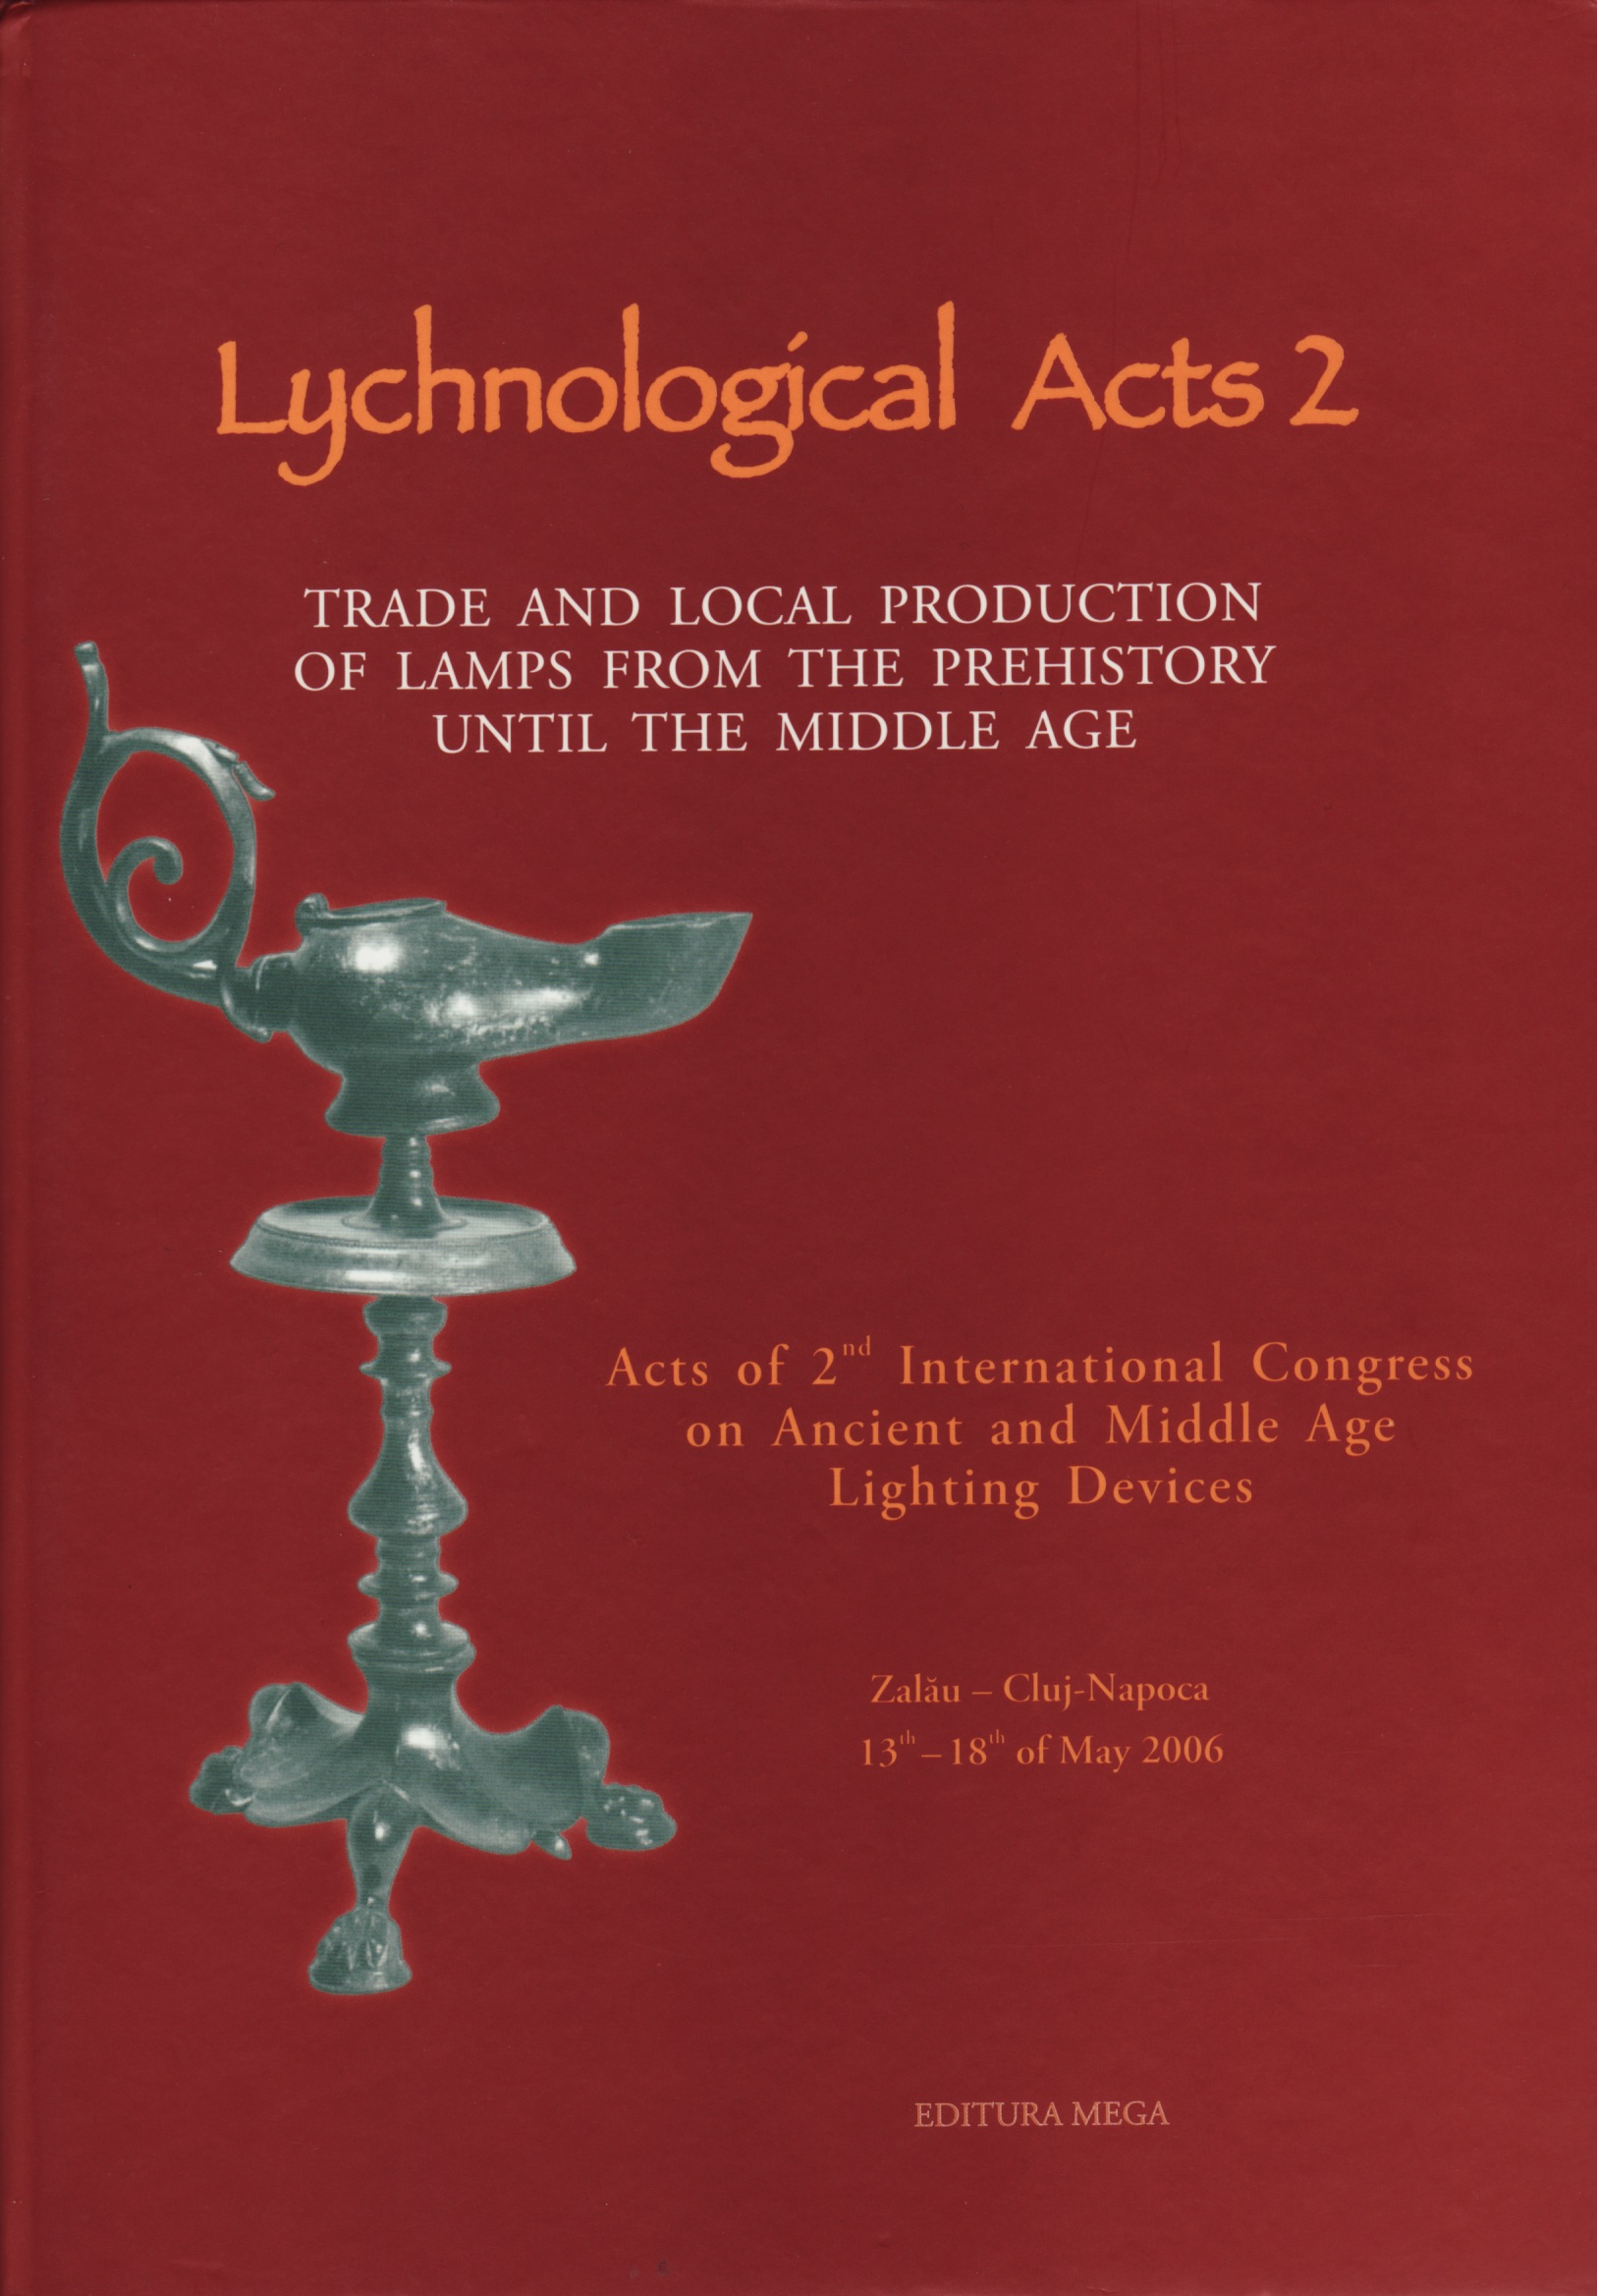 lychnological acts 2